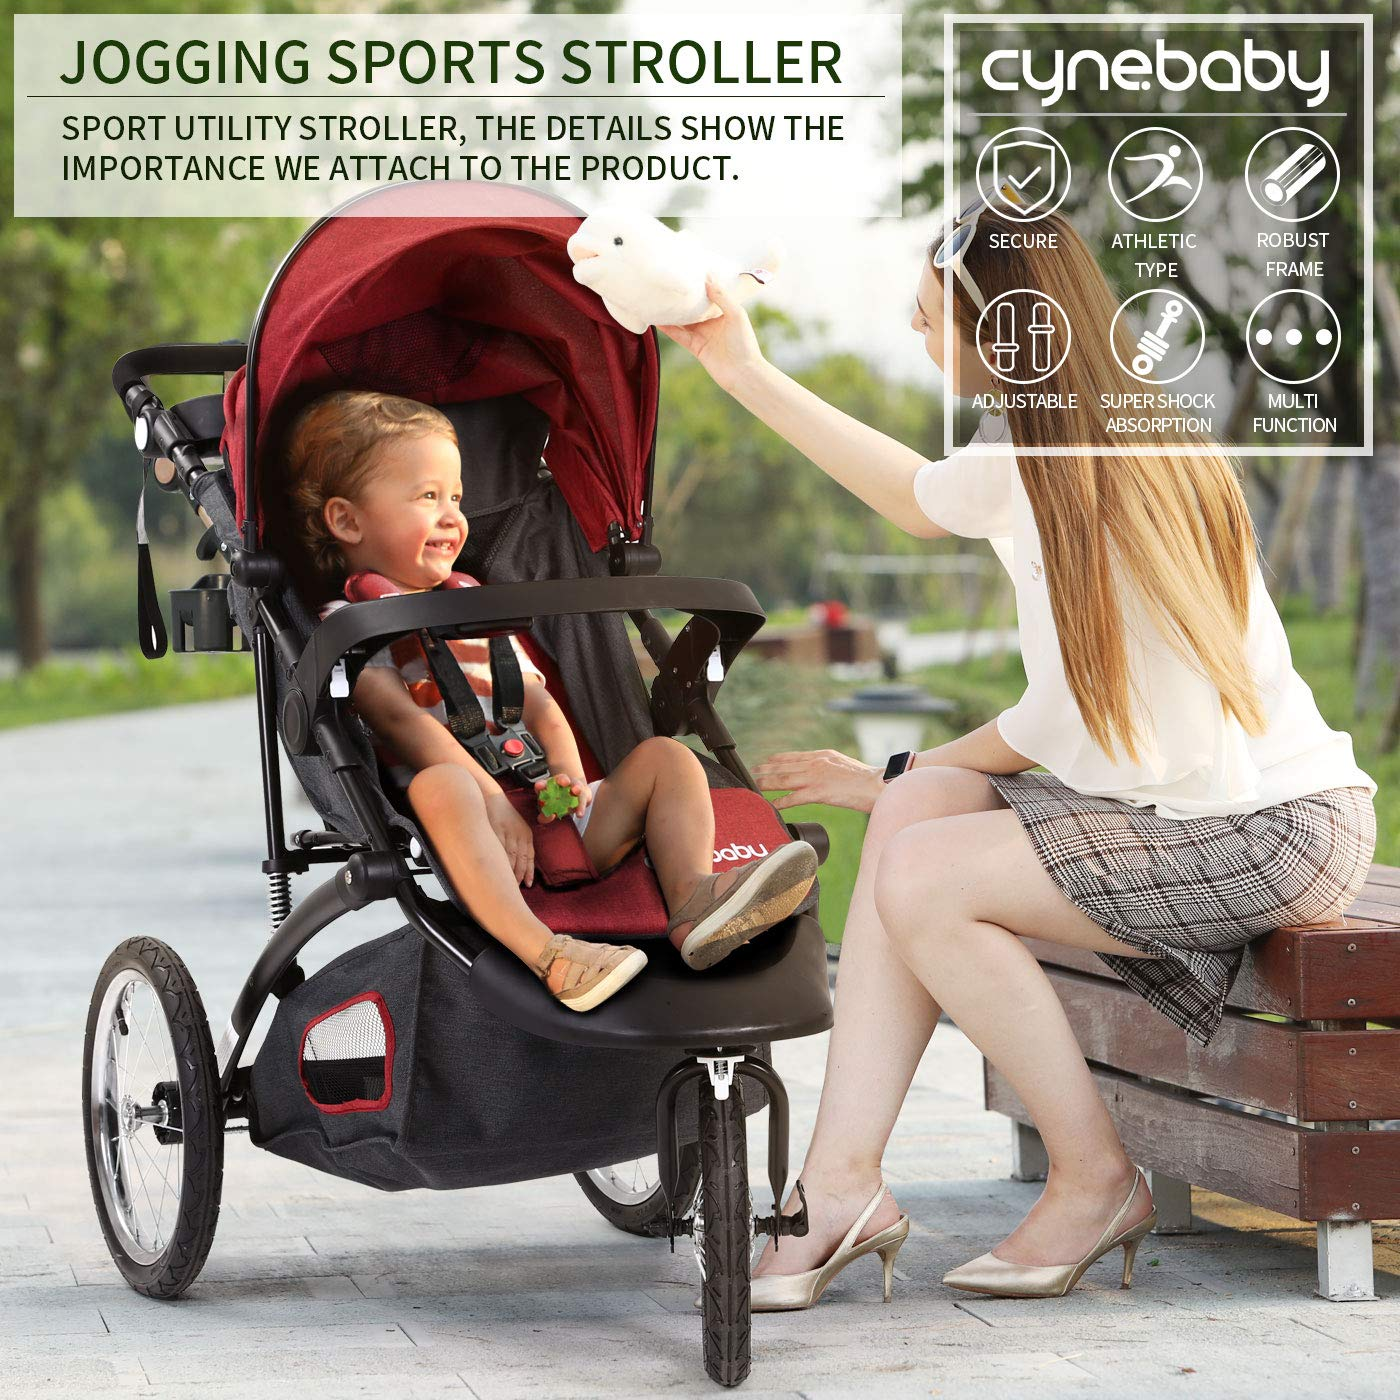 Jogging Stroller Fold City Baby Jogger Travel Citi Jog Strollers Single Toddler Baby Pram Jogging Compact Urban Ultralight Joggers Beby Carriage Pushchair Stroller Travel System by Cynebaby / HAIXIAO (Image #9)